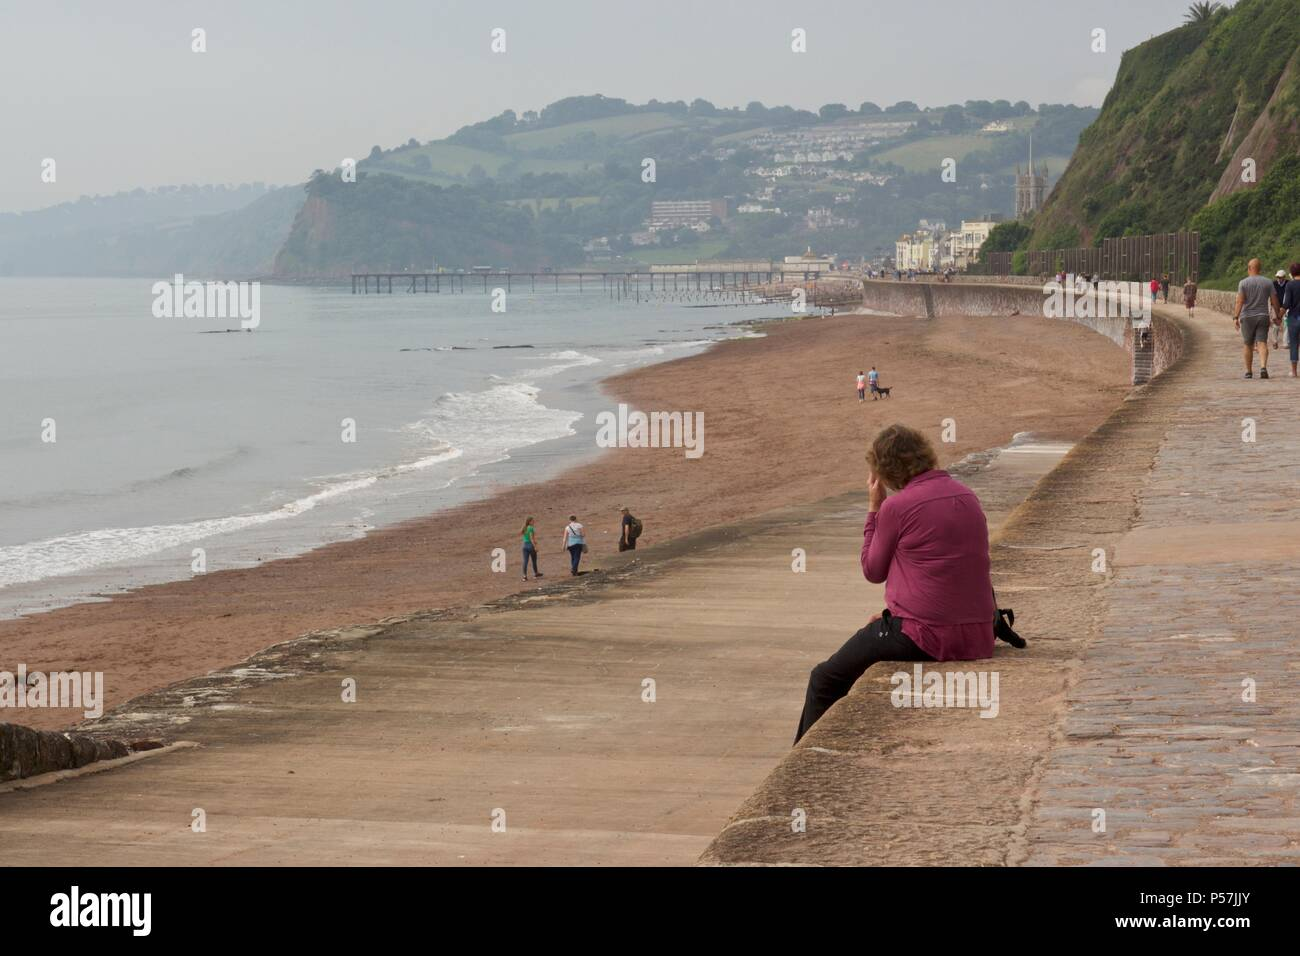 A woman sitting on the edge of the sea wall, looking out onto Teignmouth beach in South Devon - Stock Image